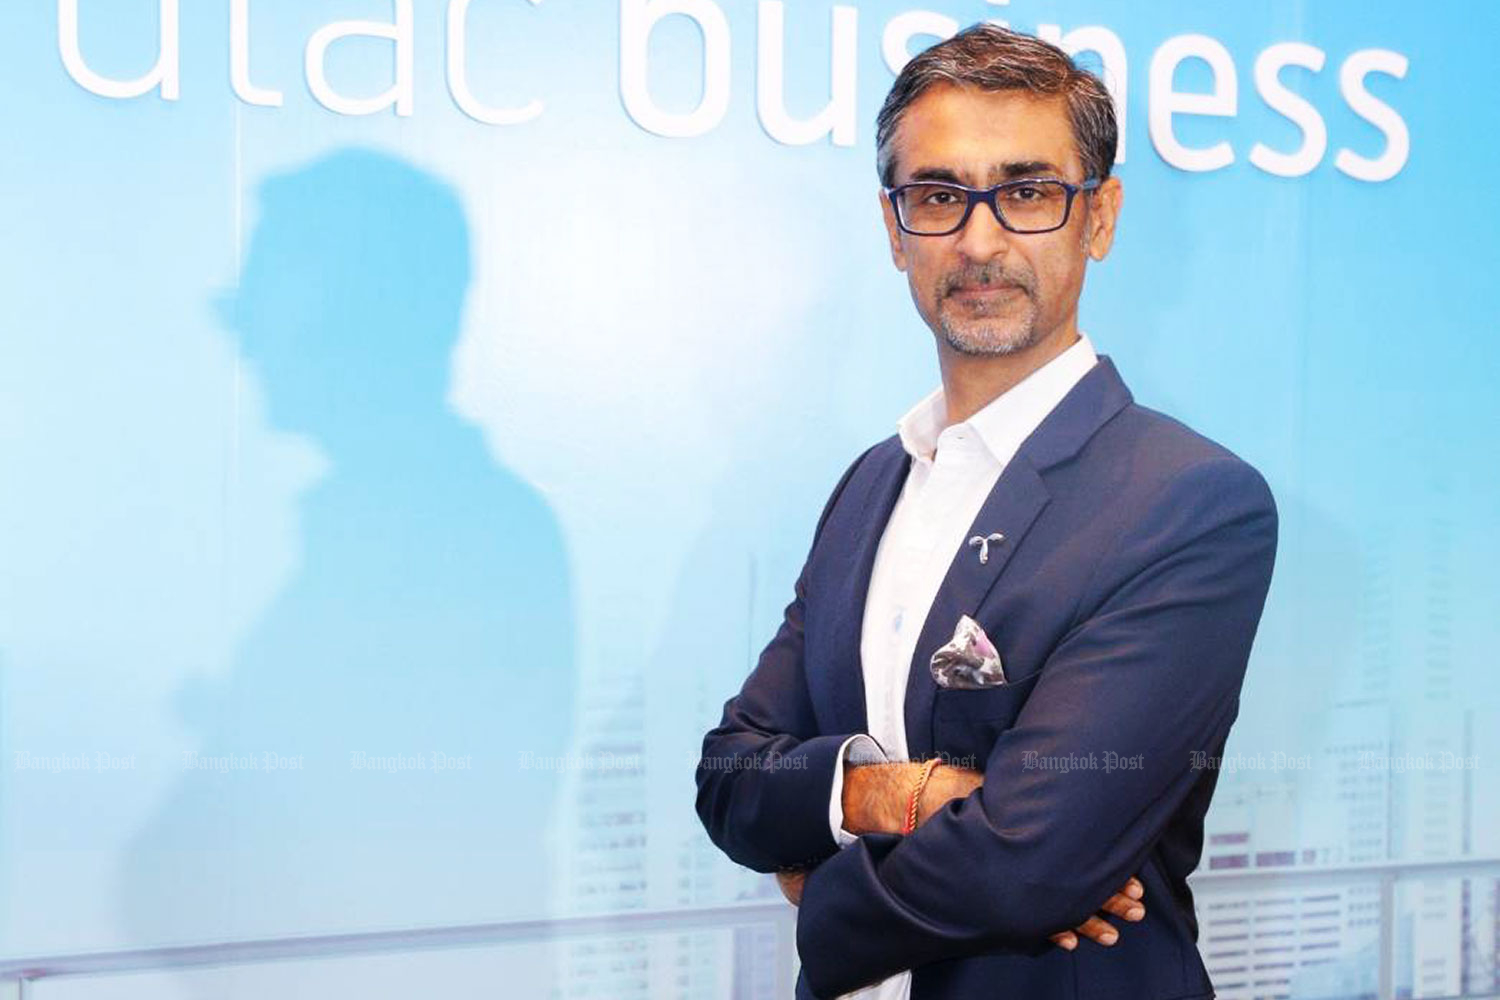 Business clients who use the new SIM get automatic data package upgrades, meaning existing clients are always guaranteed to be on plans equally attractive to those offered to new clients, Mr Bawa says.